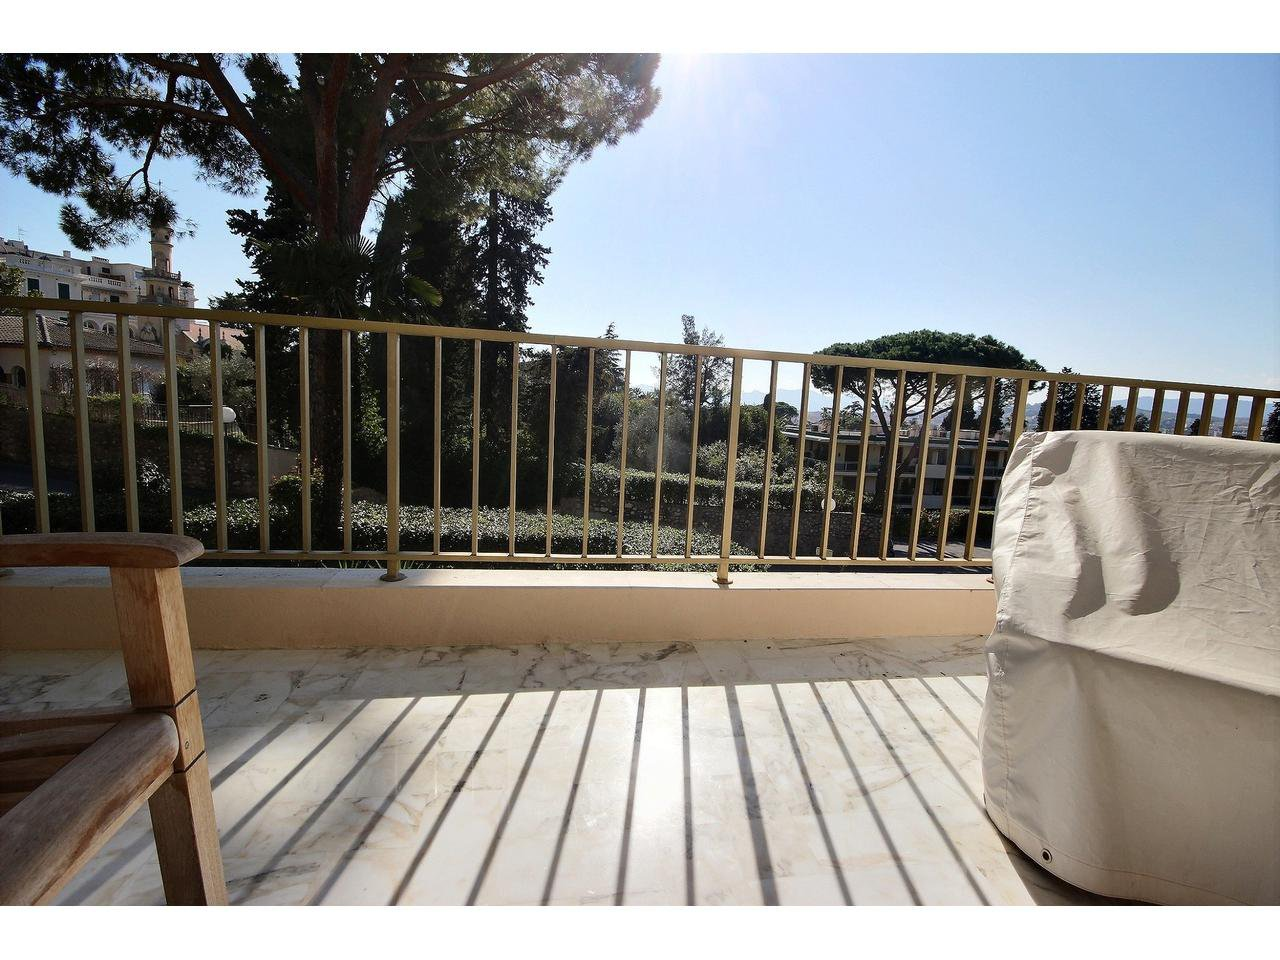 3 bedroom apartment in Cannes for sale